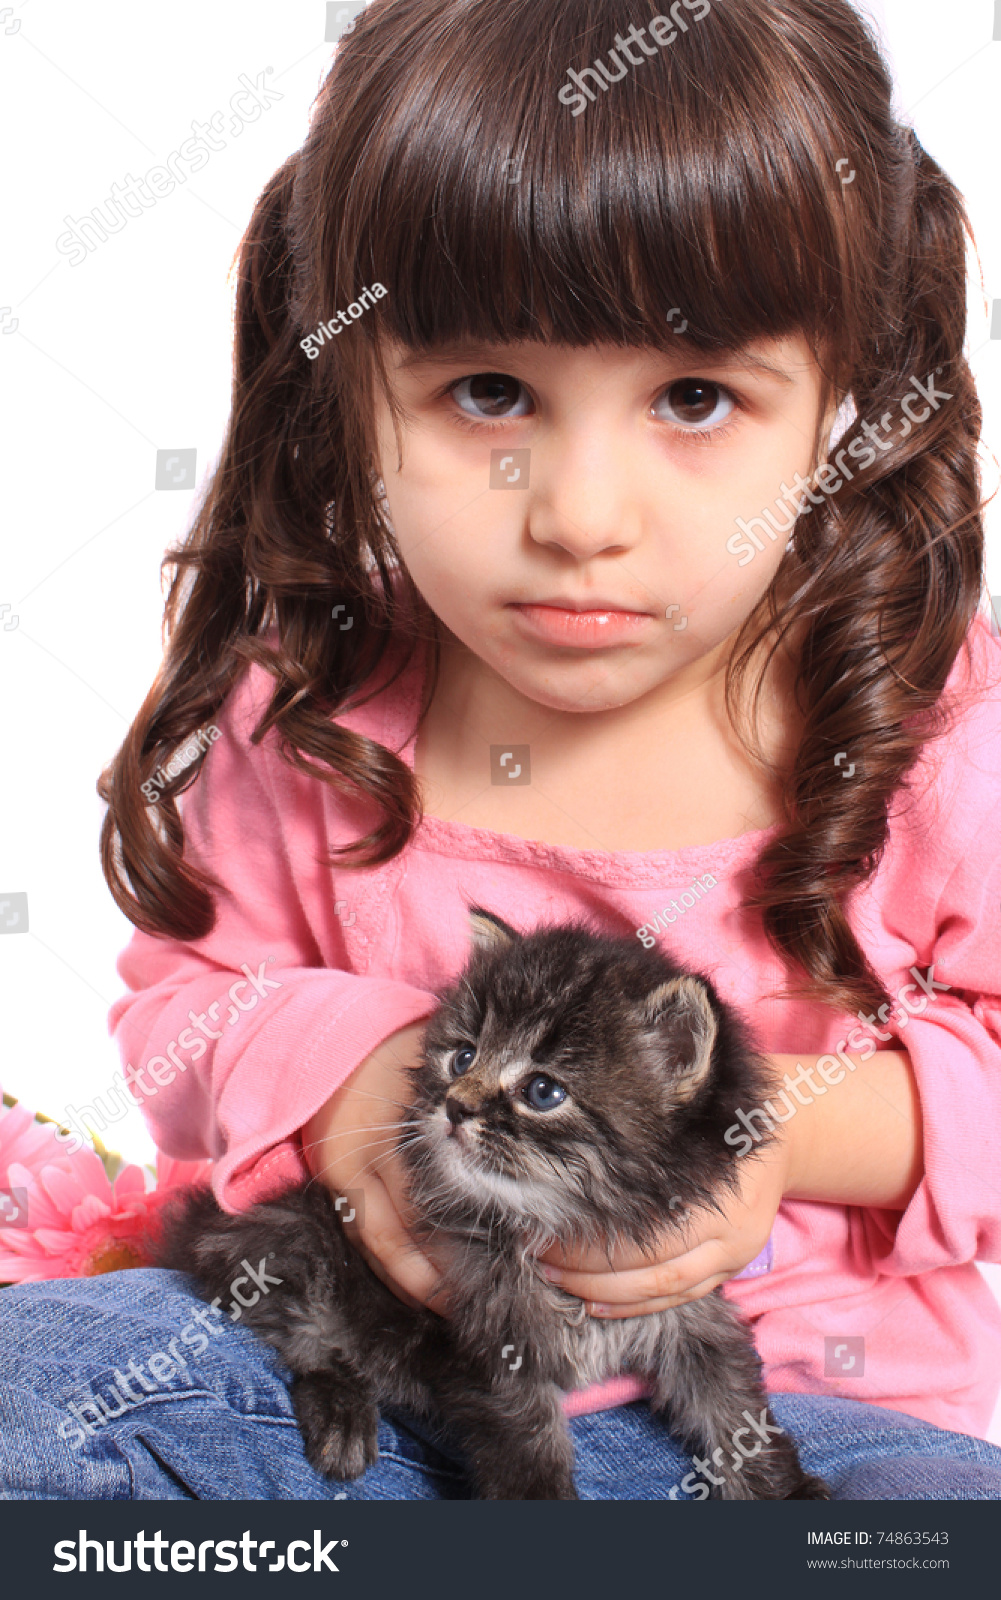 Adorable Four Year Boy With Big Blue Eyes Stock Image: Cute Little Four Year Old Girl Stock Photo 74863543